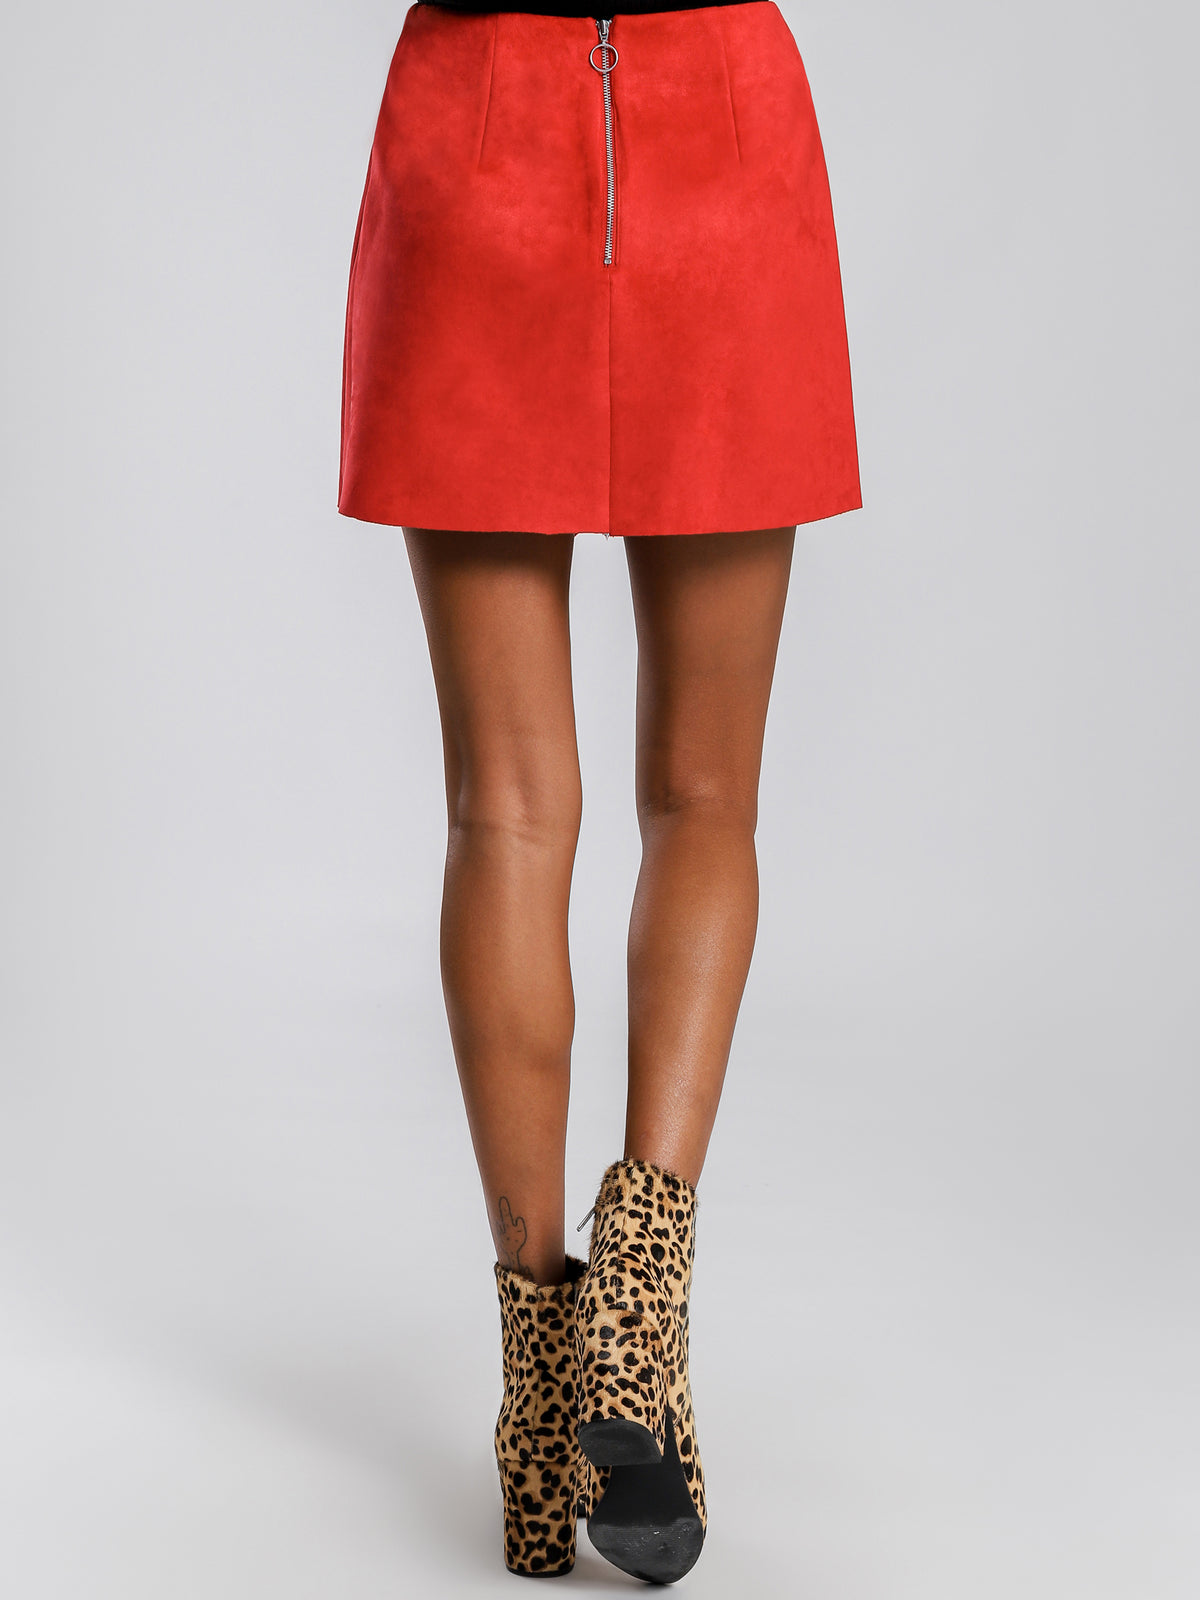 Blair Ruffle Mini Skirt in Red Suedette